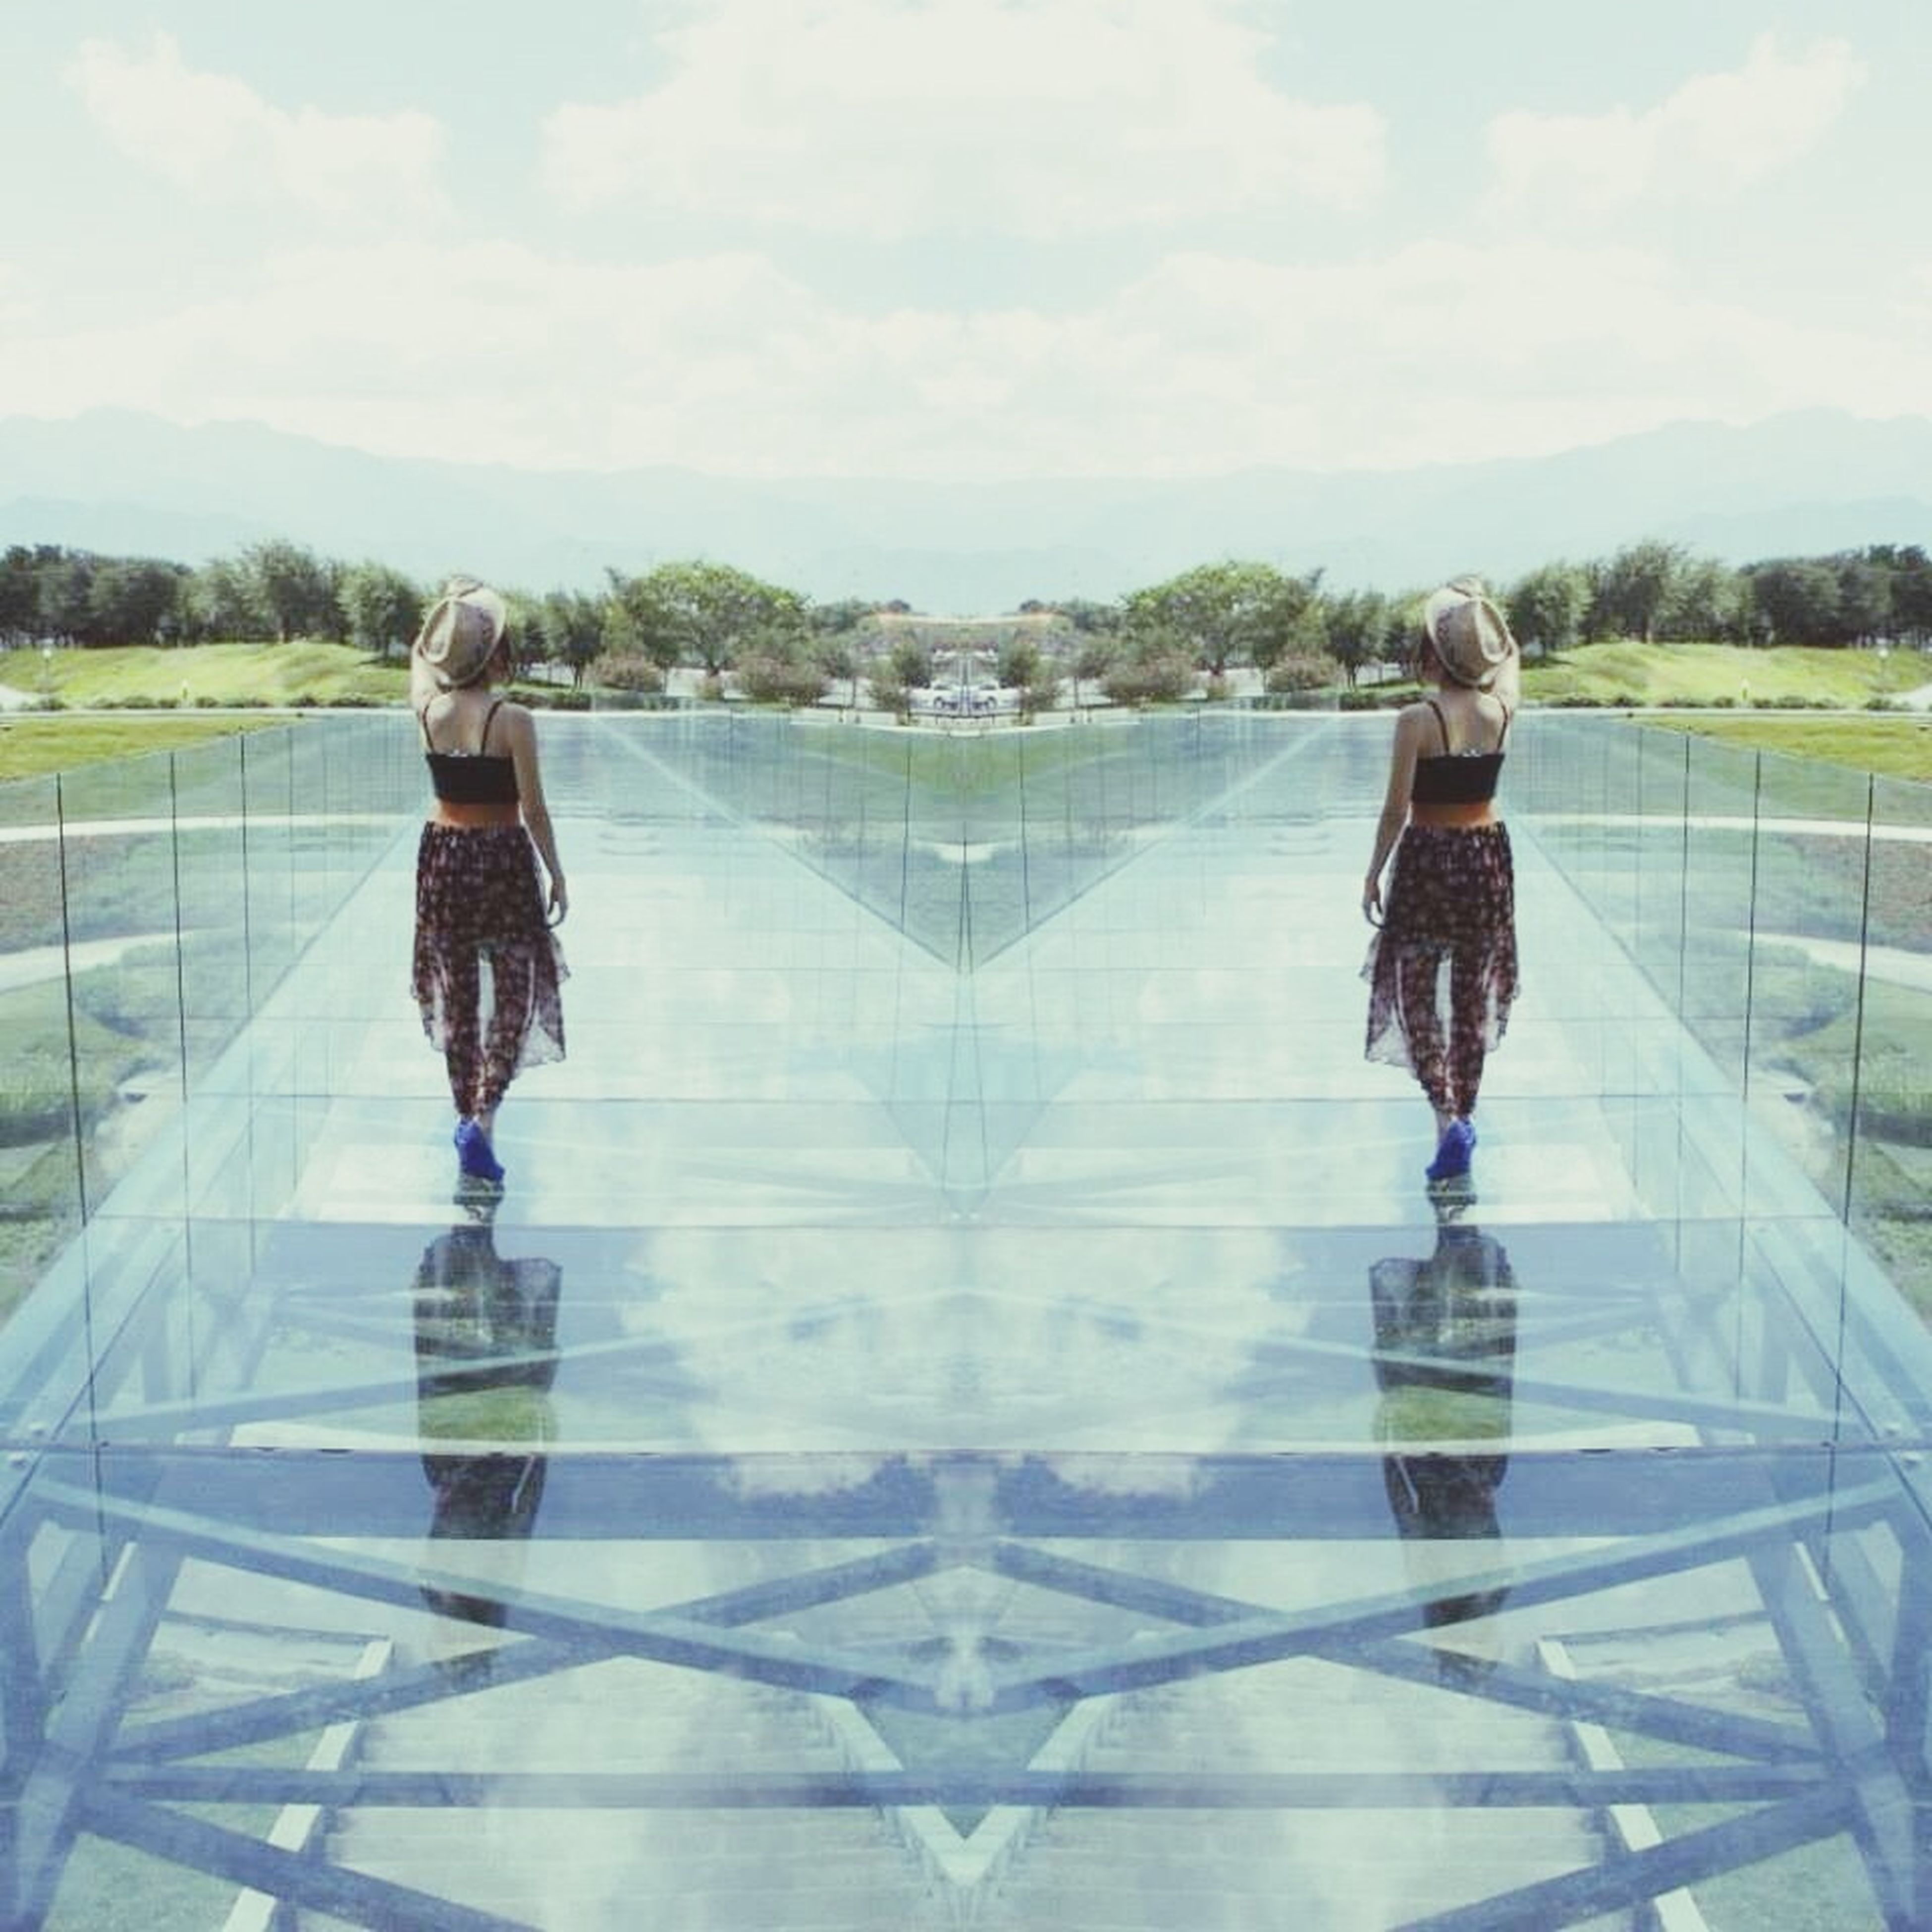 lifestyles, standing, rear view, full length, leisure activity, casual clothing, sky, water, person, cloud - sky, walking, men, railing, day, three quarter length, reflection, nature, tree